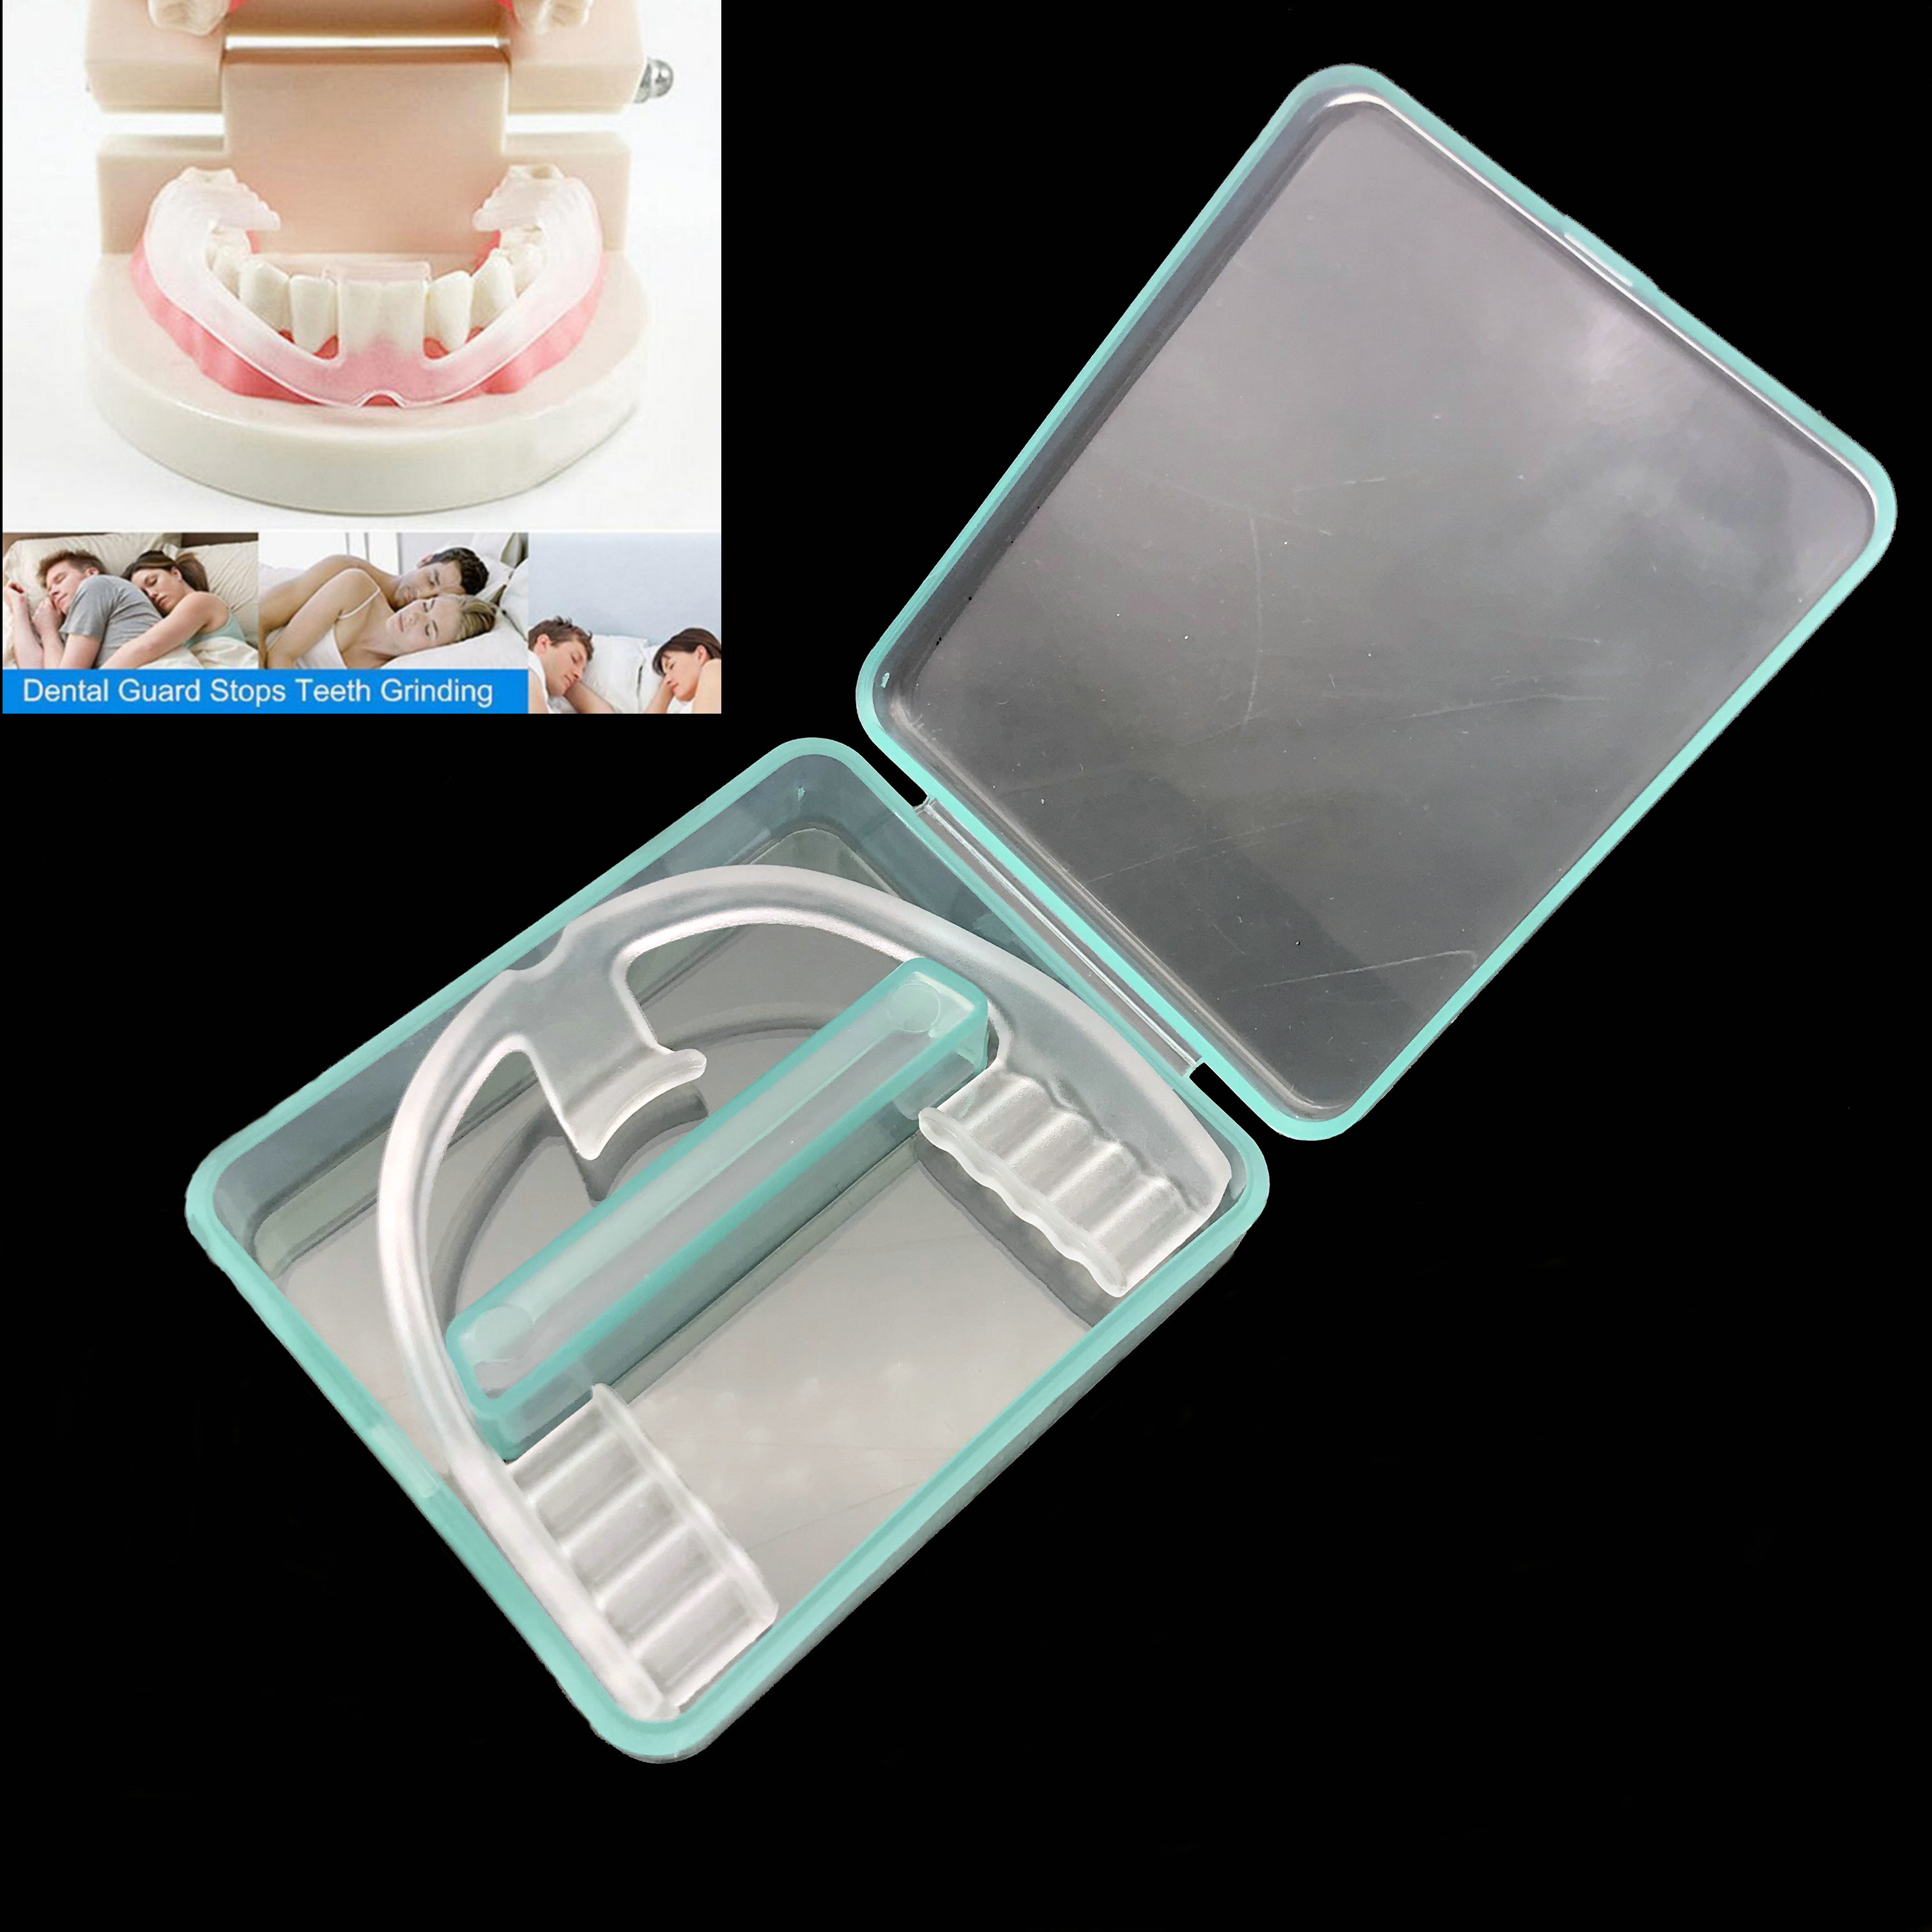 Night Mouth Guard For Teeth Clenching Grinding Dental Bite Aid Silicone